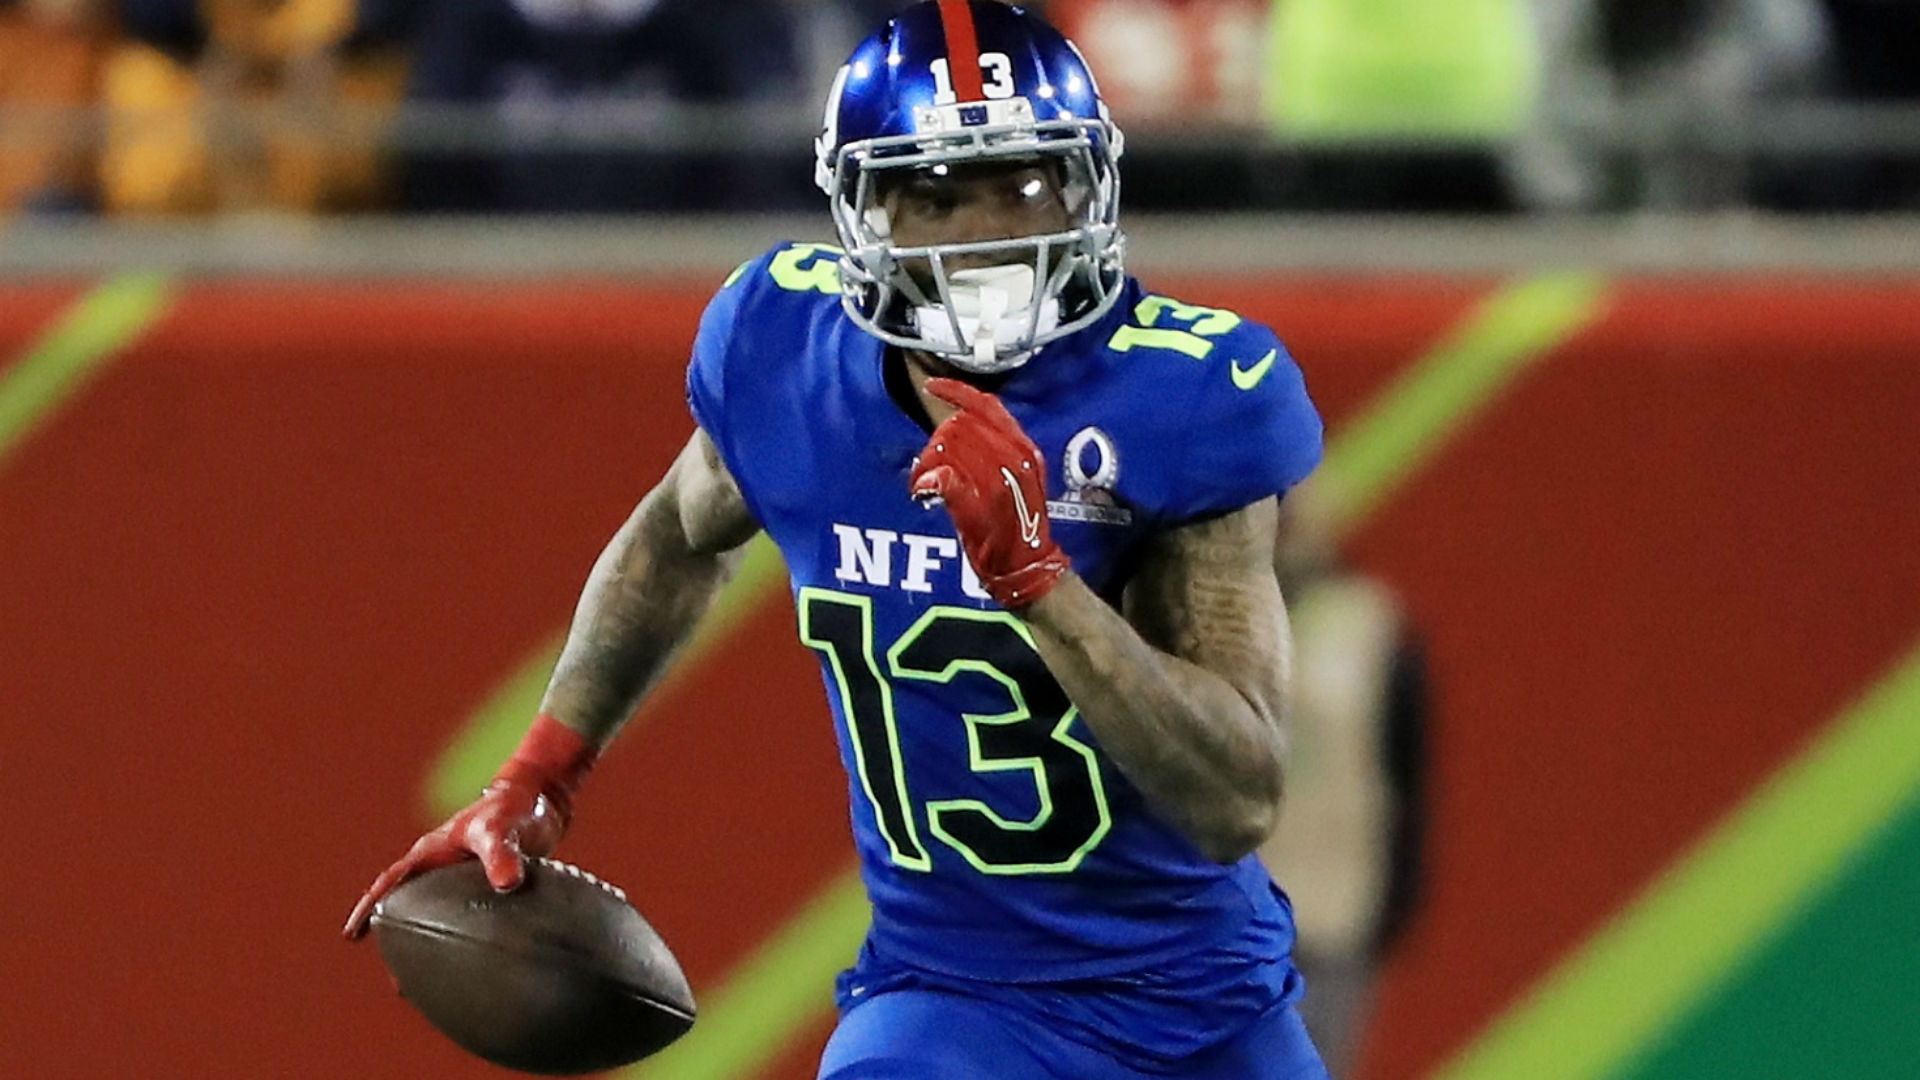 Giants' Odell Beckham Jr. surprised with high school jersey at Pro Bowl